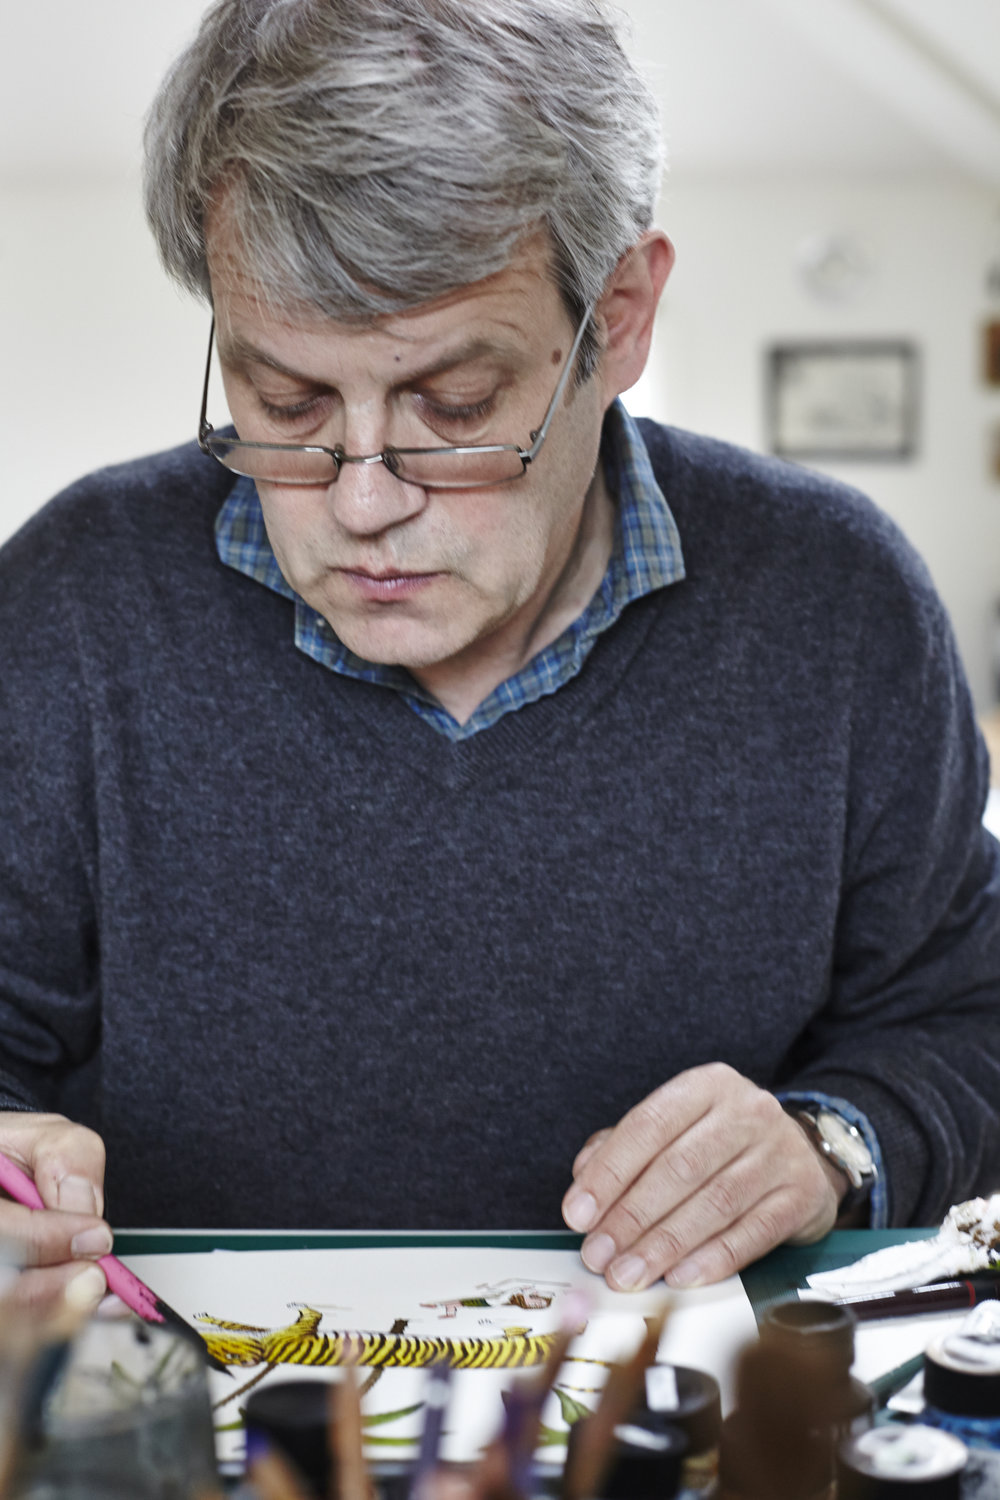 Axel Scheffler photographed by Liam Jackson